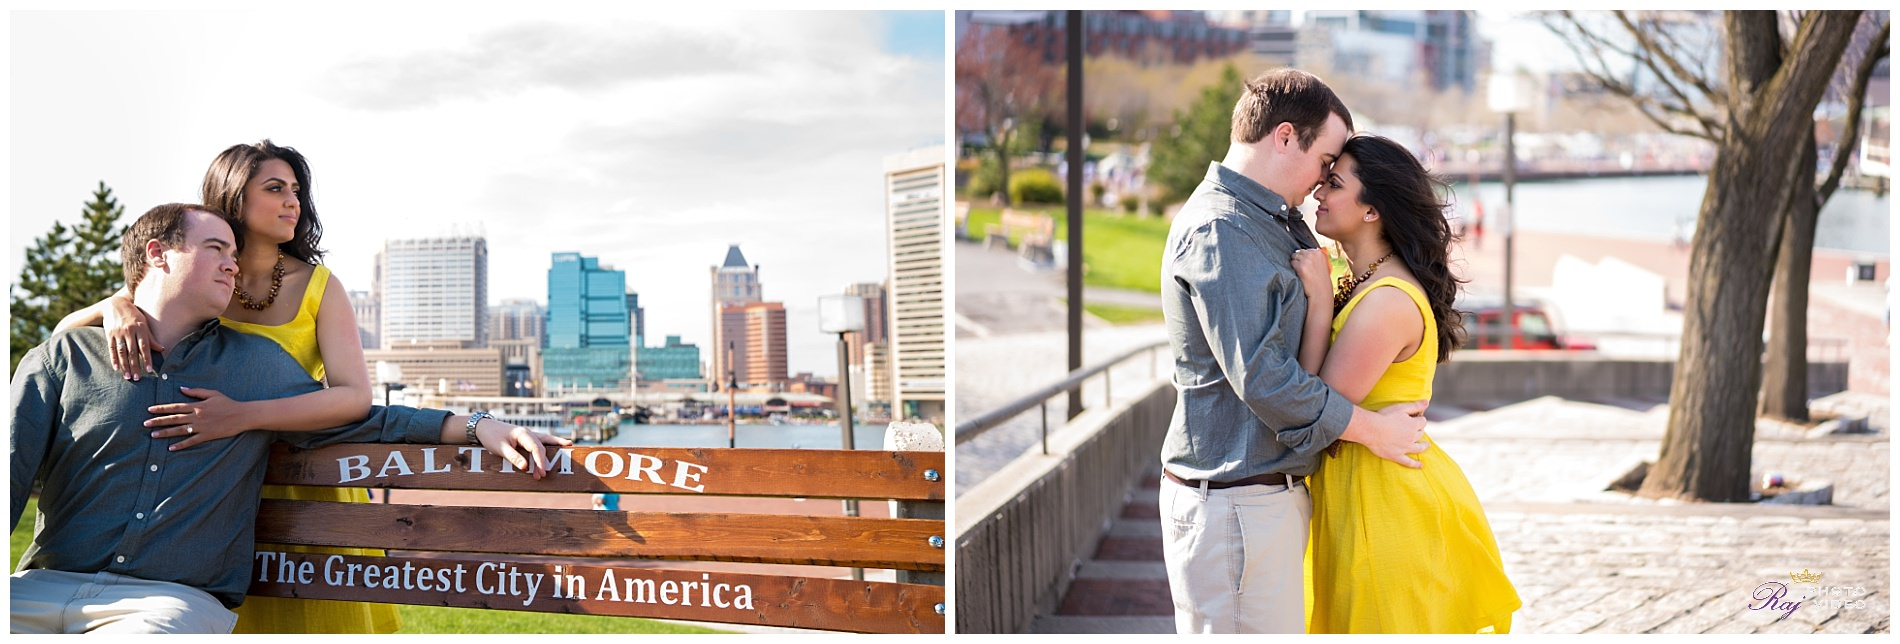 Baltimore-Maryland-Engagement-Shoot-Aditi-Peter-12.jpg